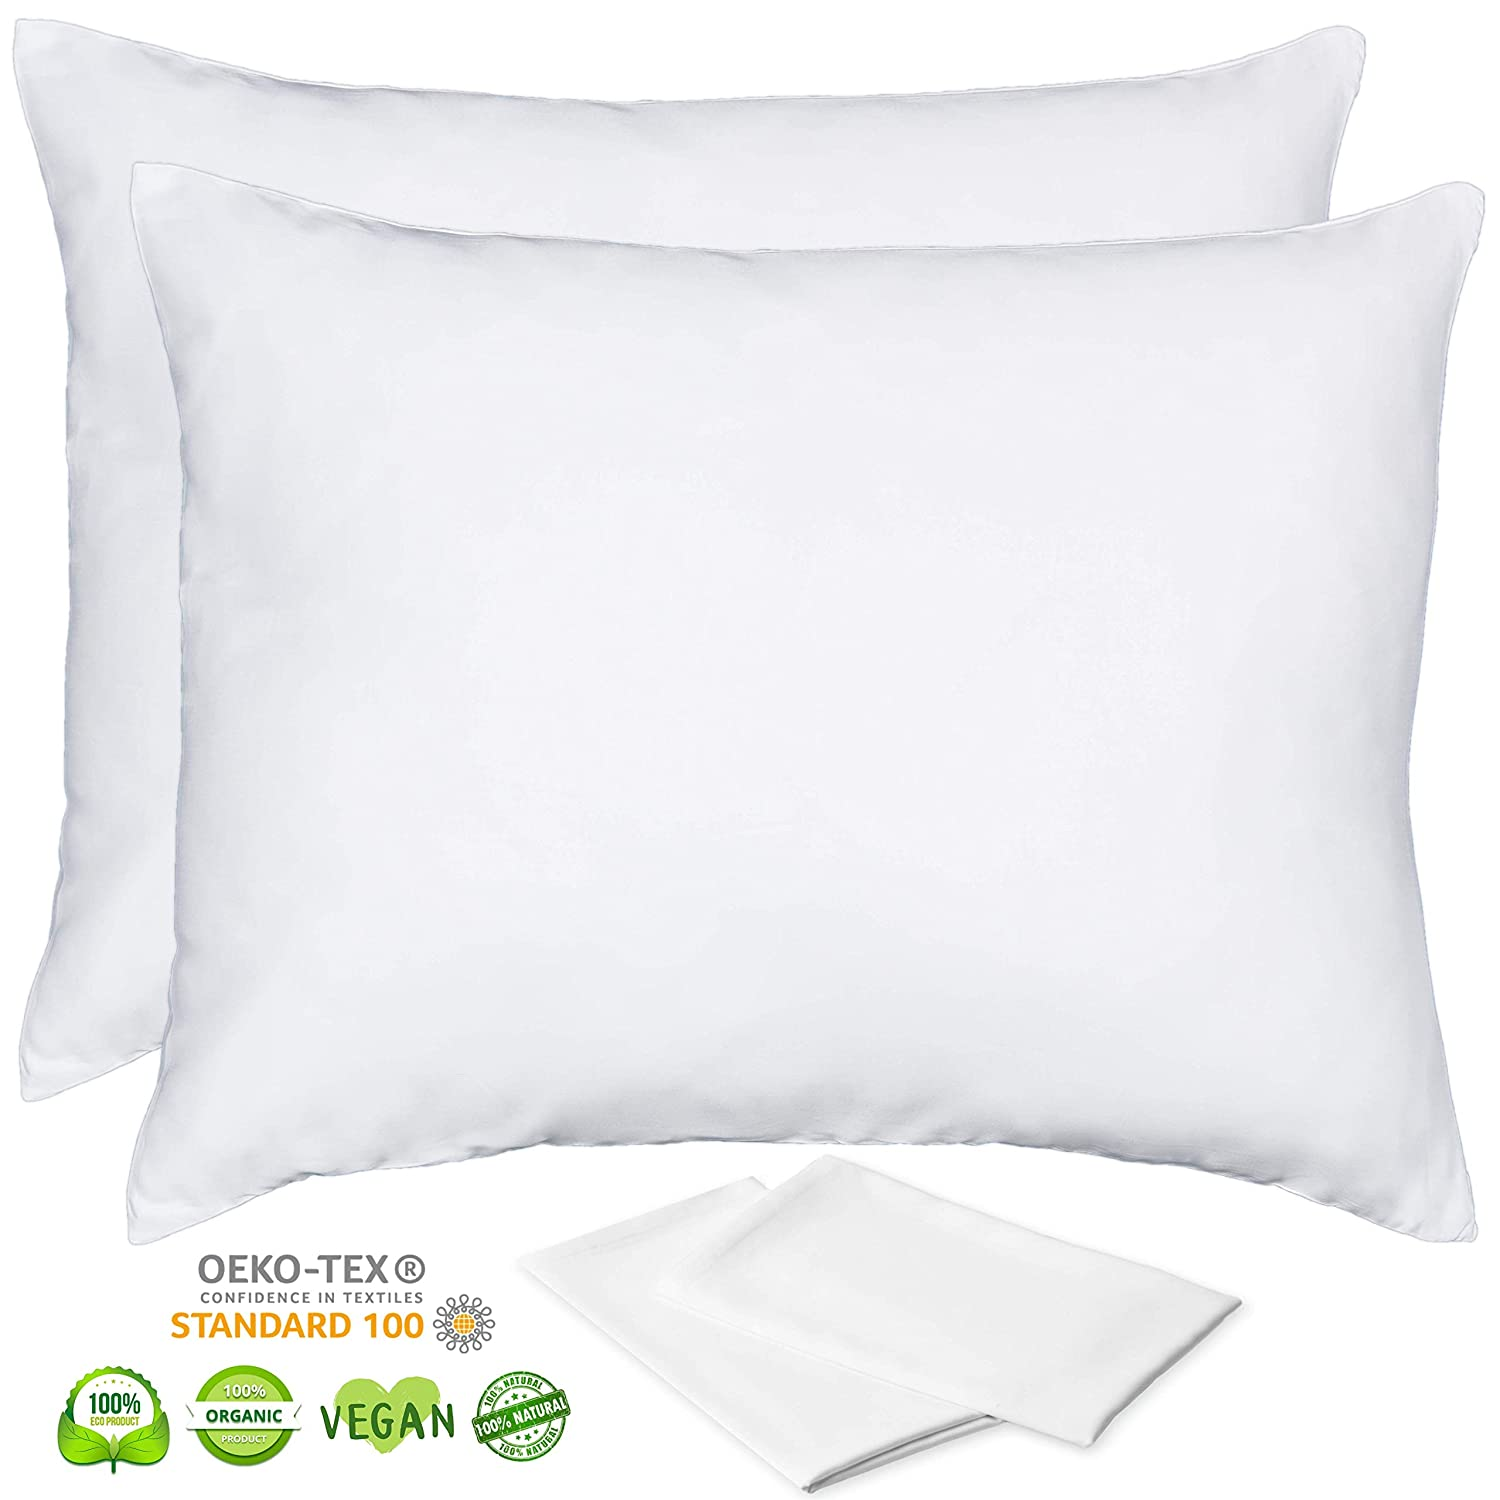 Organic Bamboo Pillow Cases Lyocell - King Size Pillow Cases Set of 2 with Zipper White 20x36 Inches Cooling for Night Sweats Hot Flashes Ultra Soft Eco Friendly Hypoallergenic Breathable Pillowcase